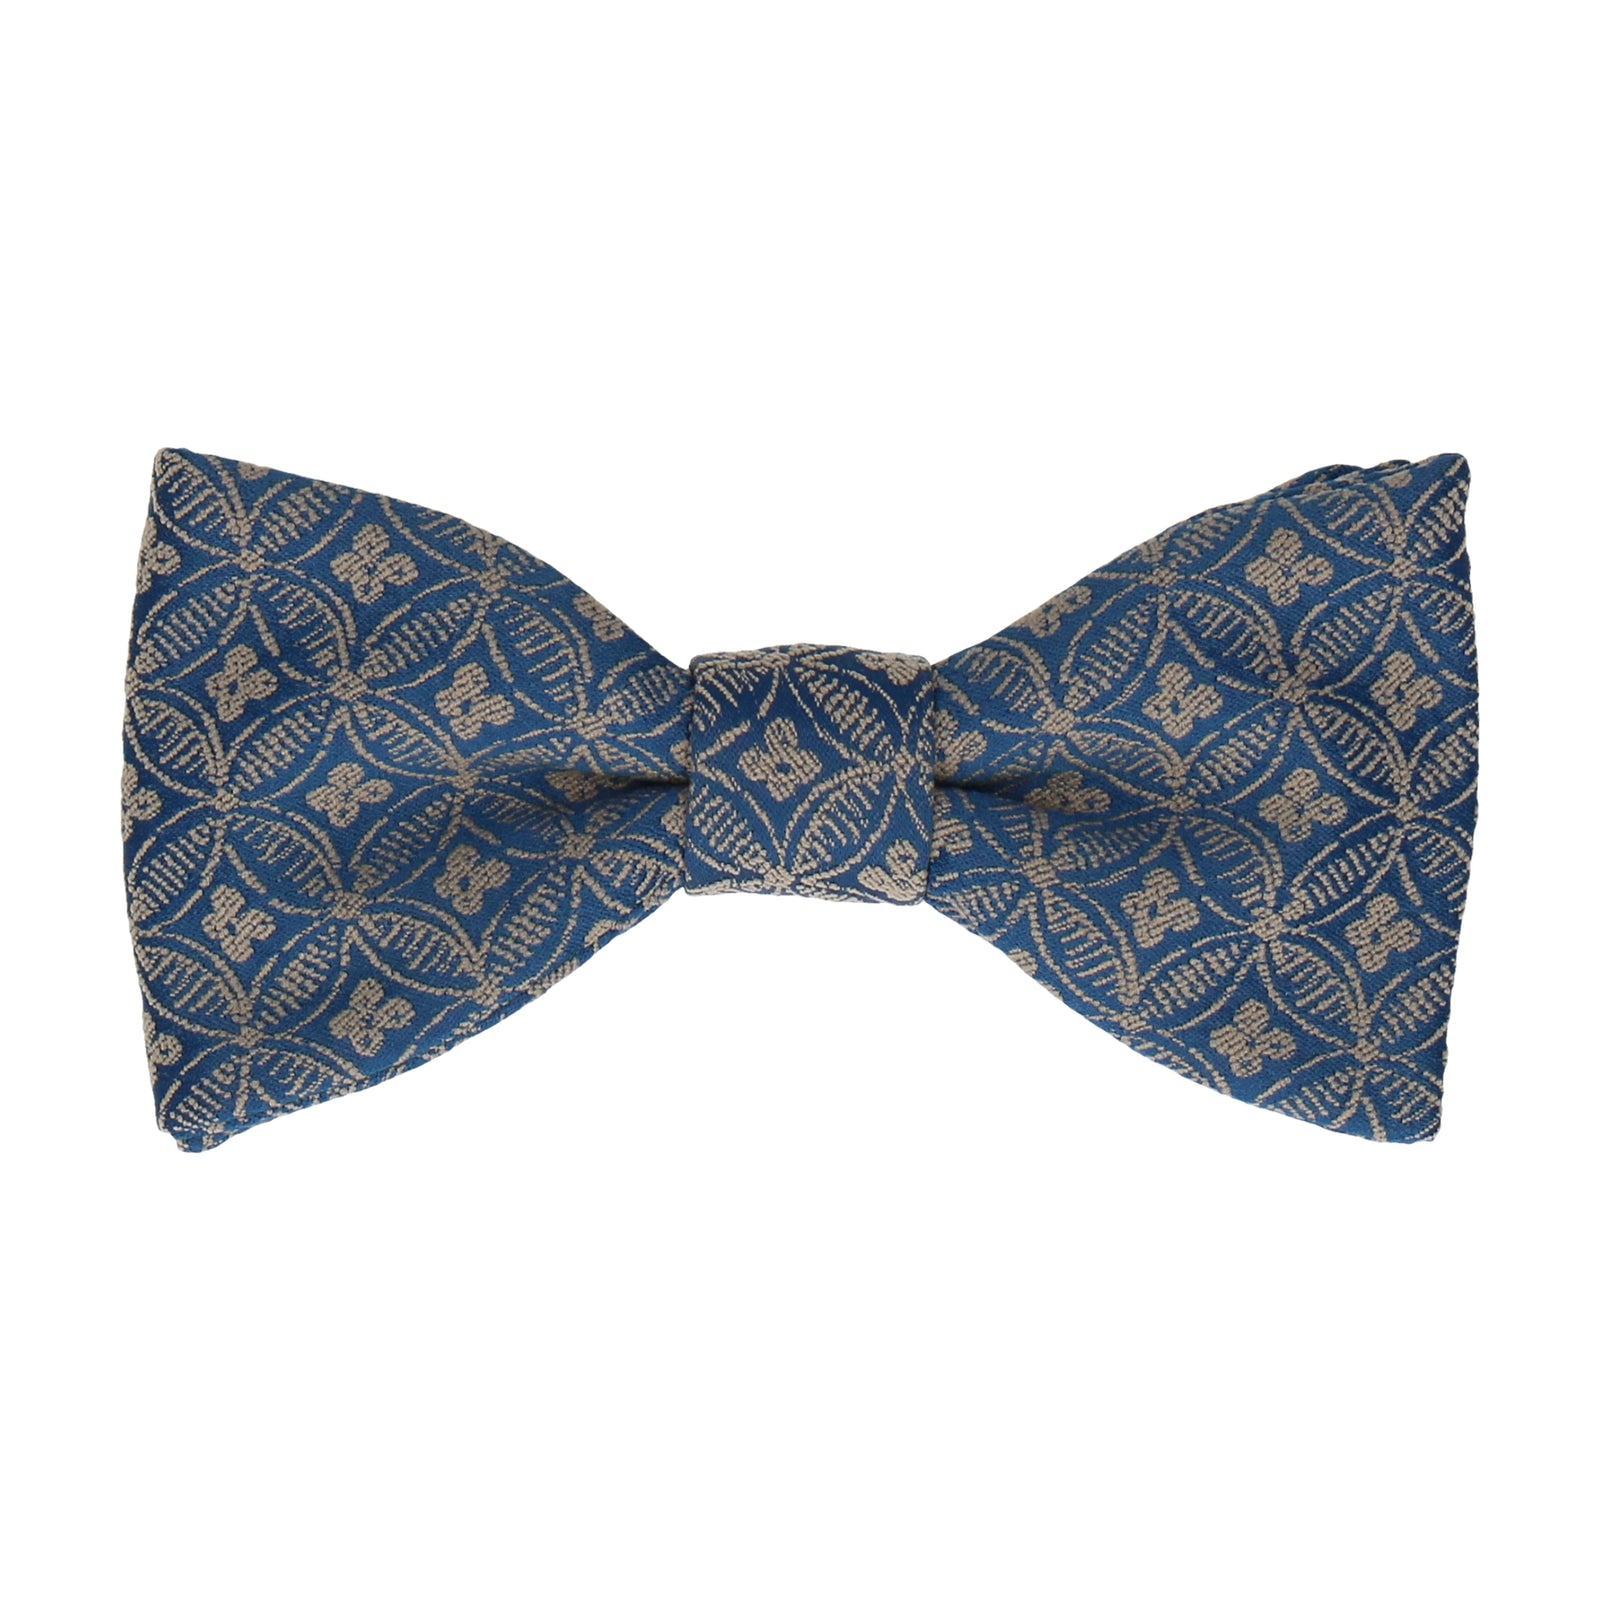 Dubois in Blue Bow Tie